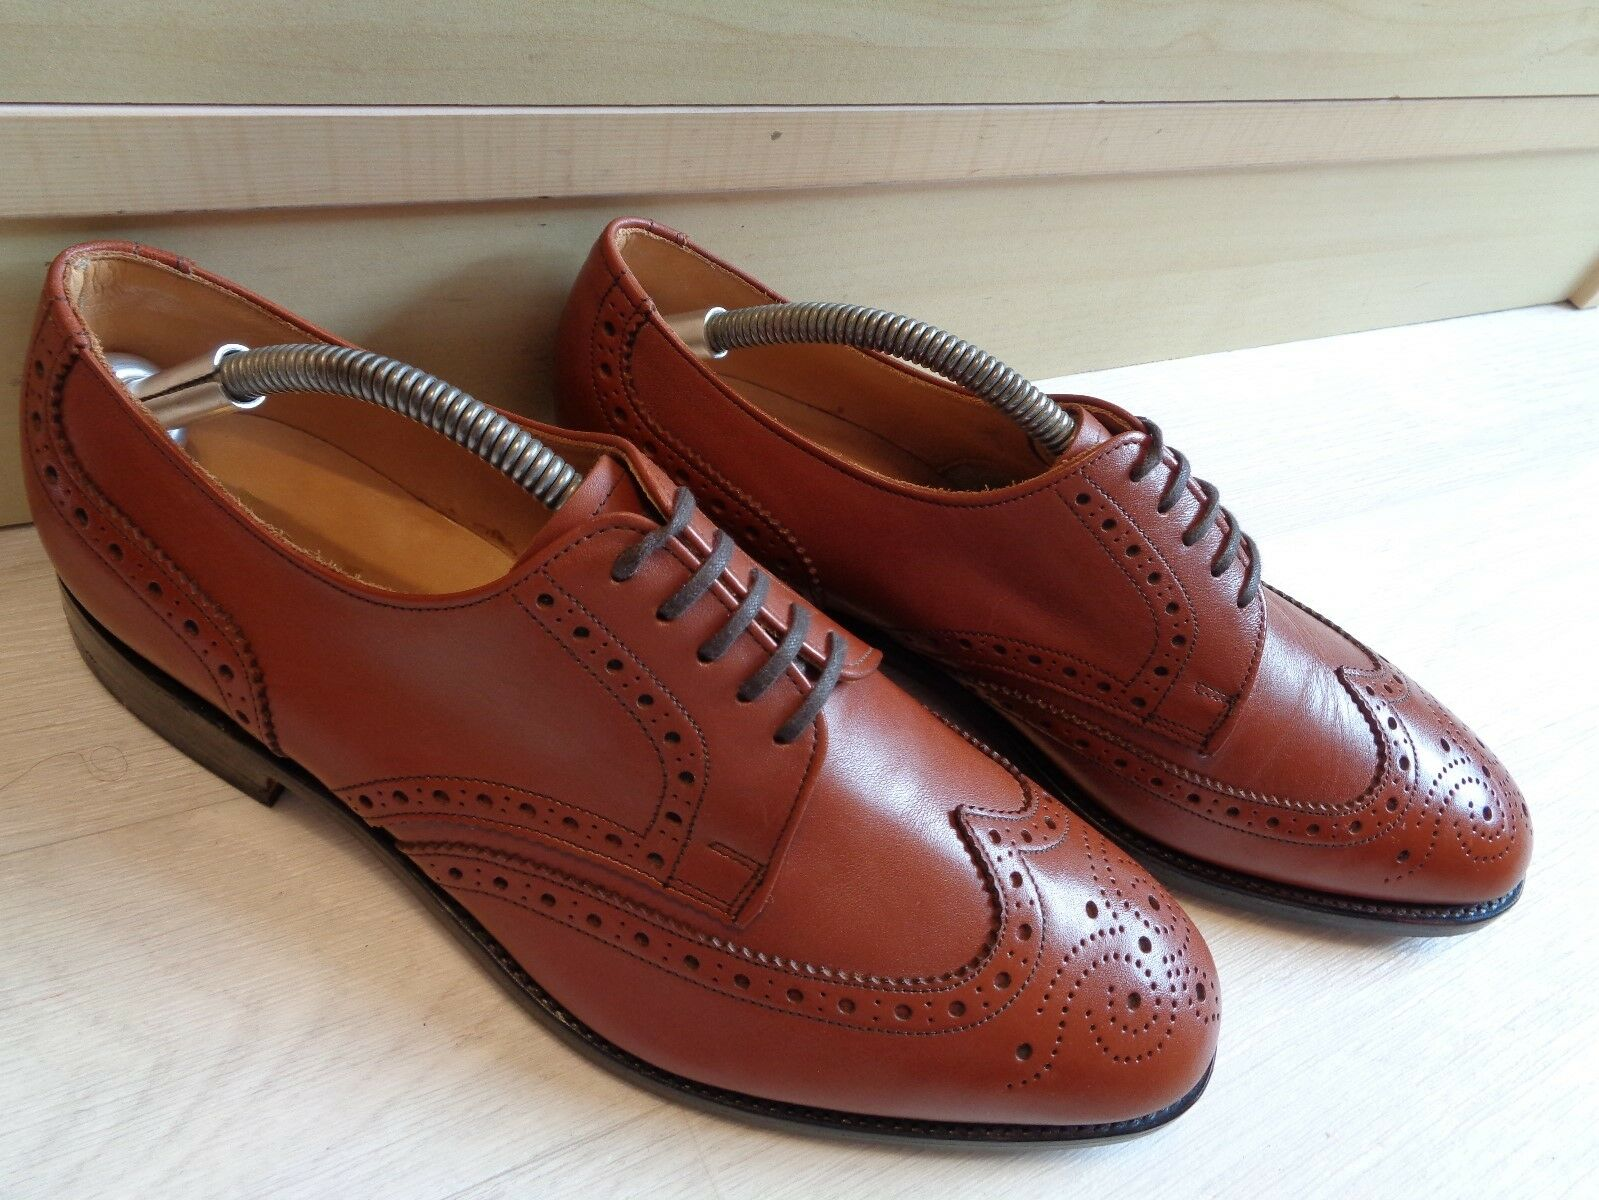 Loake Shoemakers completo in Tan pelle CALATA Goodyear Welt Tan in all'inglese Derby bf50e7